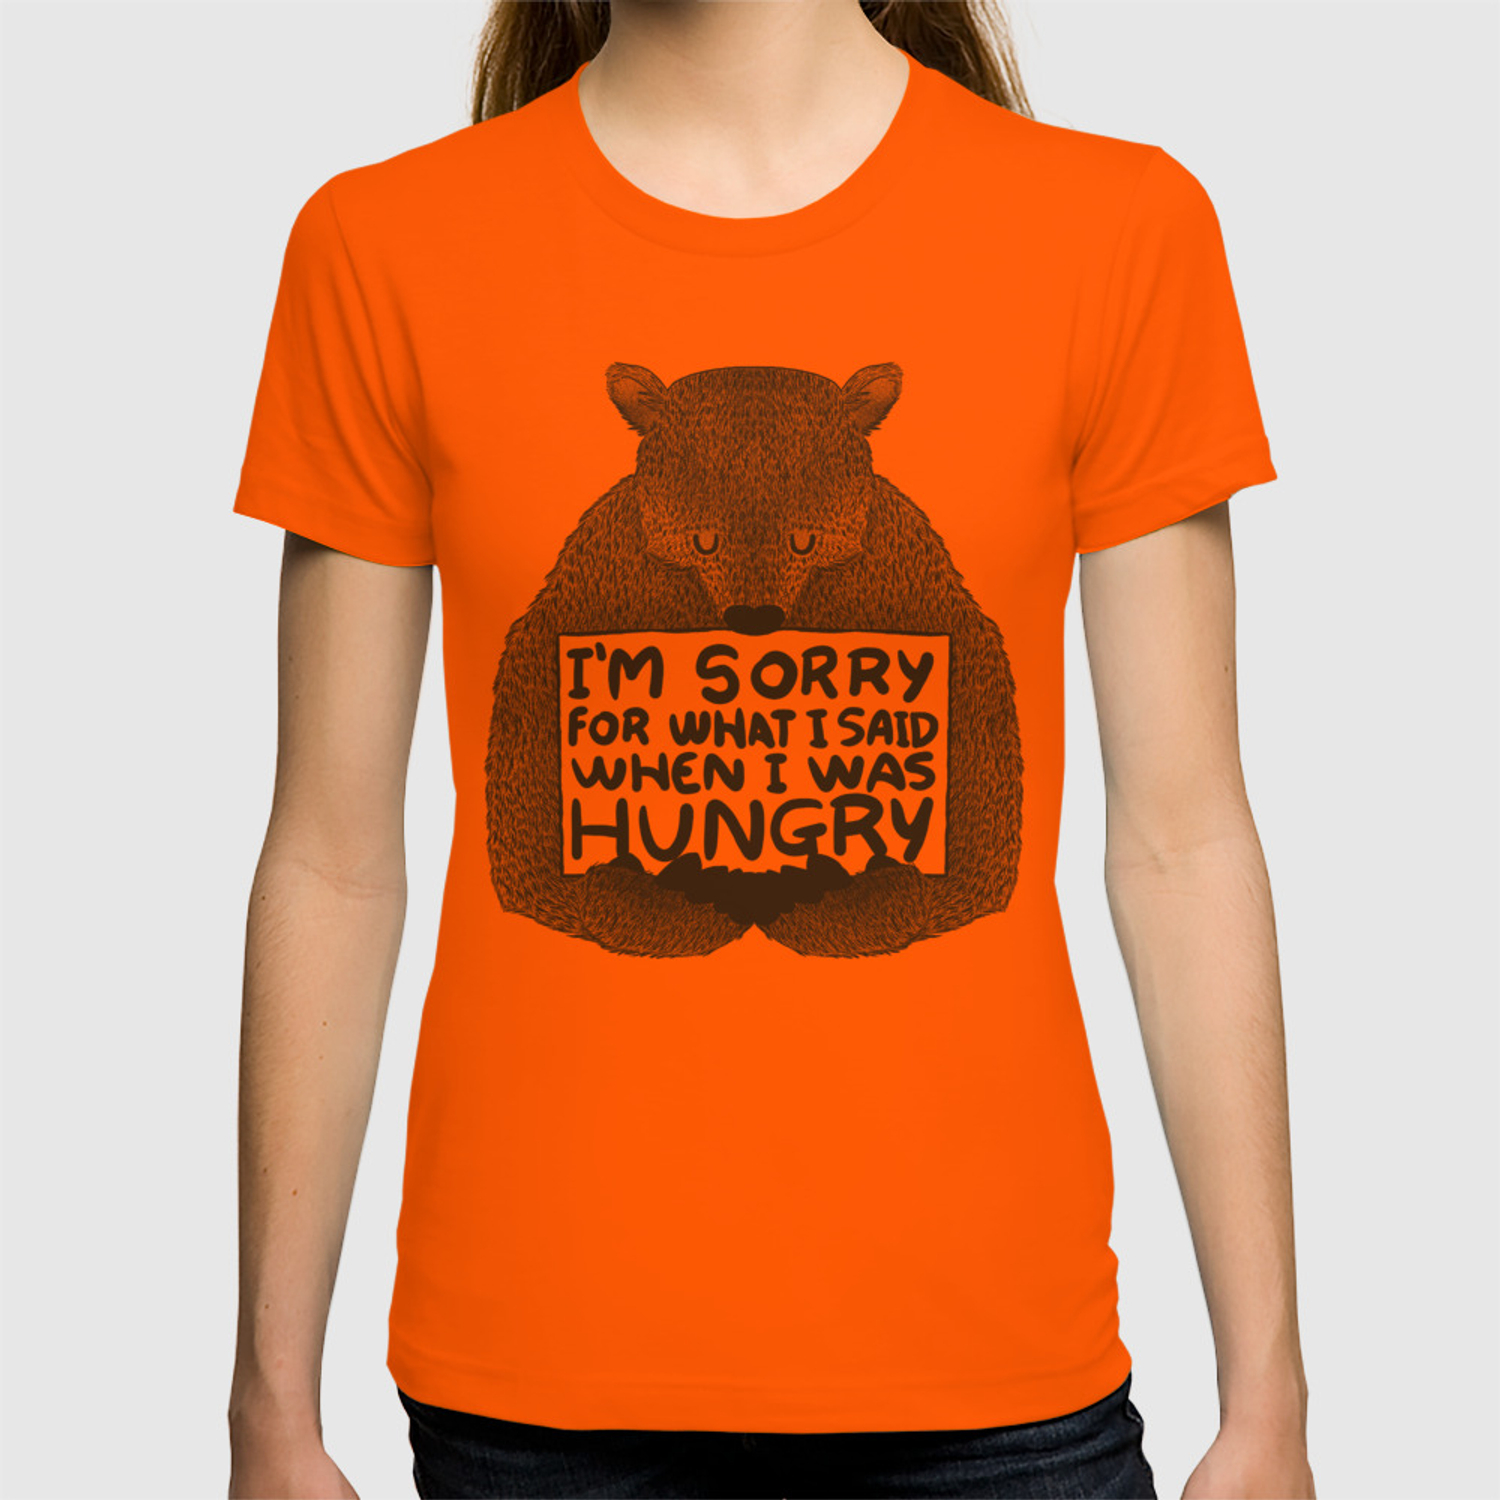 948ddb987 I'm Sorry For What I Said When I Was Hungry T-shirt by tobefonseca |  Society6